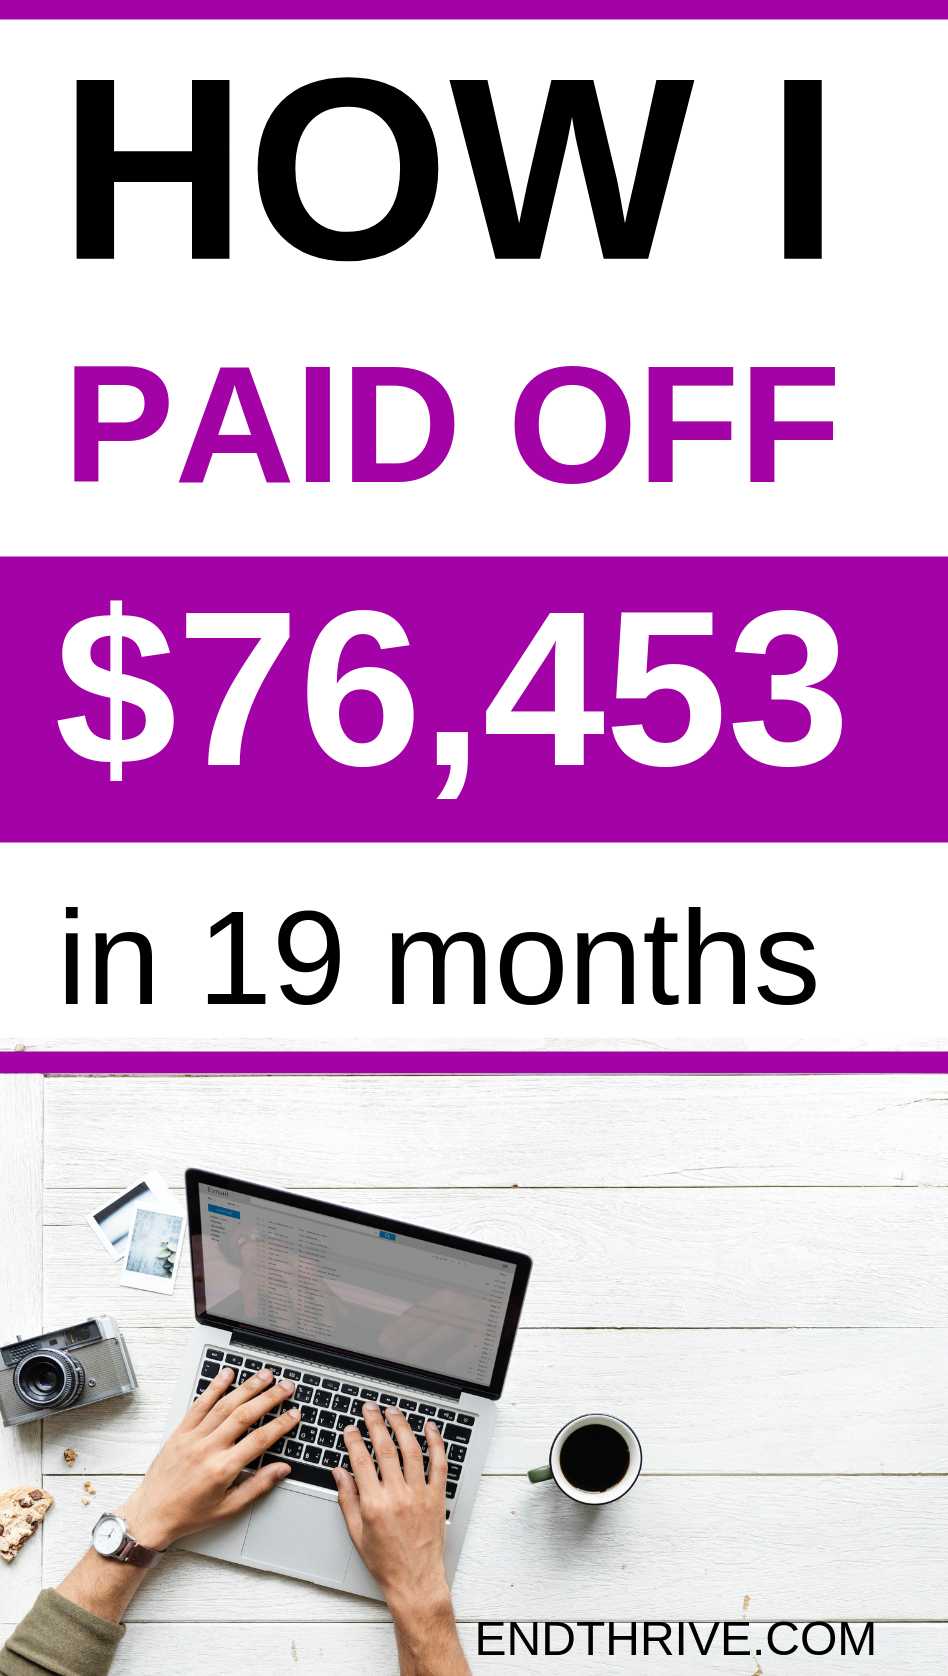 How I Paid Off $76,000 in 19 Months - Debt Payoff & Debt Free Living Are you looking for debt free living stories? Or do you just need some tips for getting rid of debt fast? Credit card debt is not fun, but you can become debt free. Here's my debt payoff story. Debt payoff, debt snowball, credit card debt payoff.